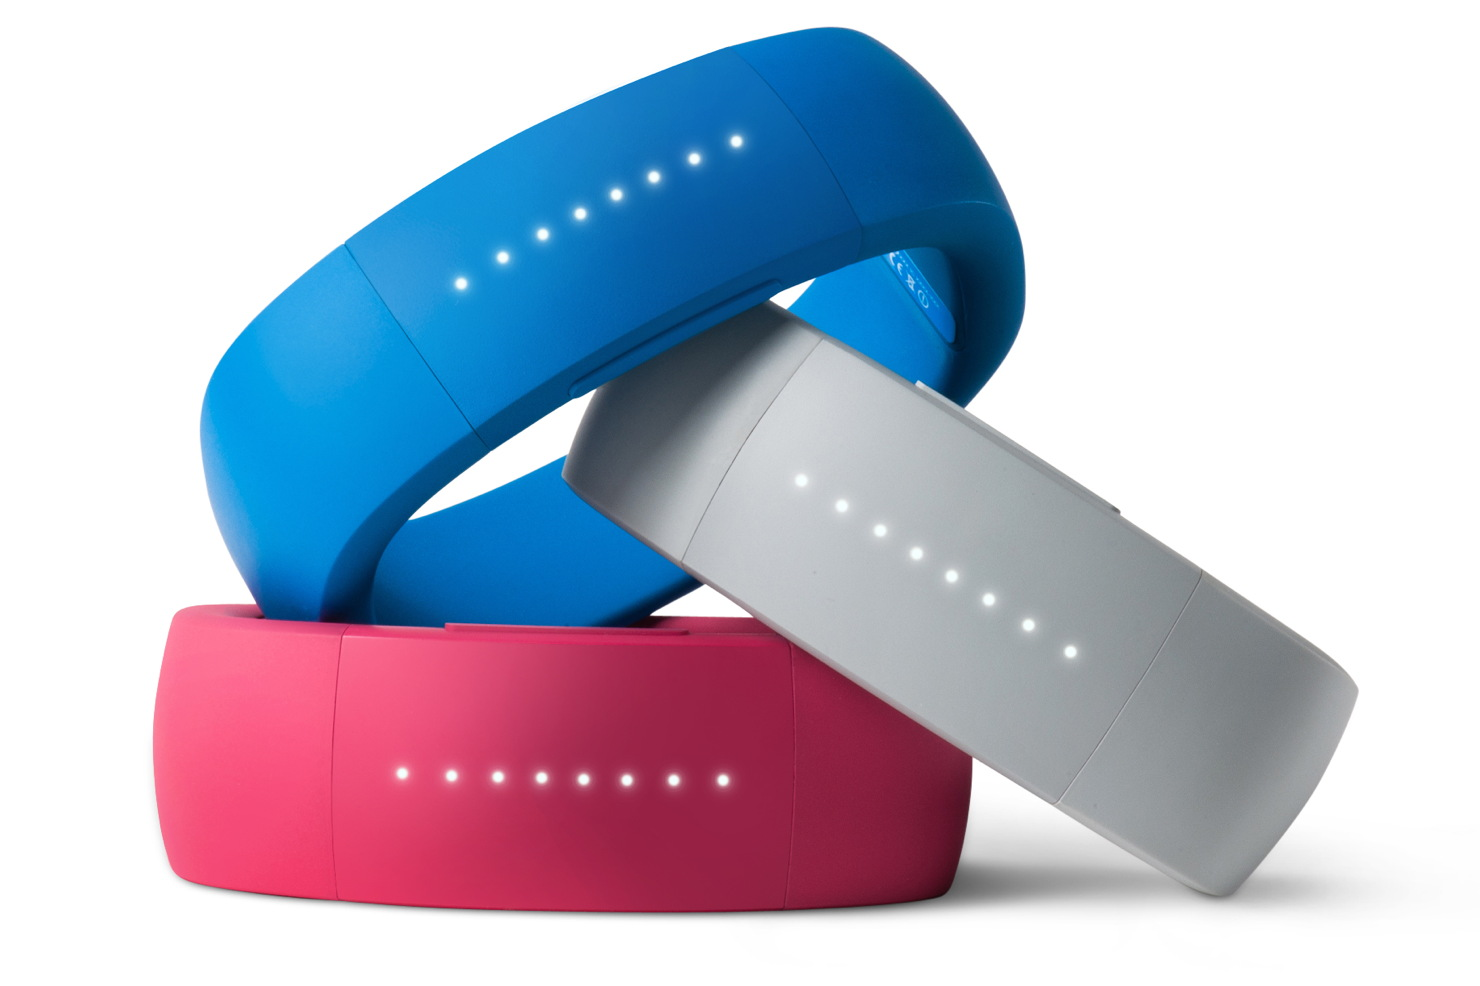 The Larklife wristband in blue, pink, and gray